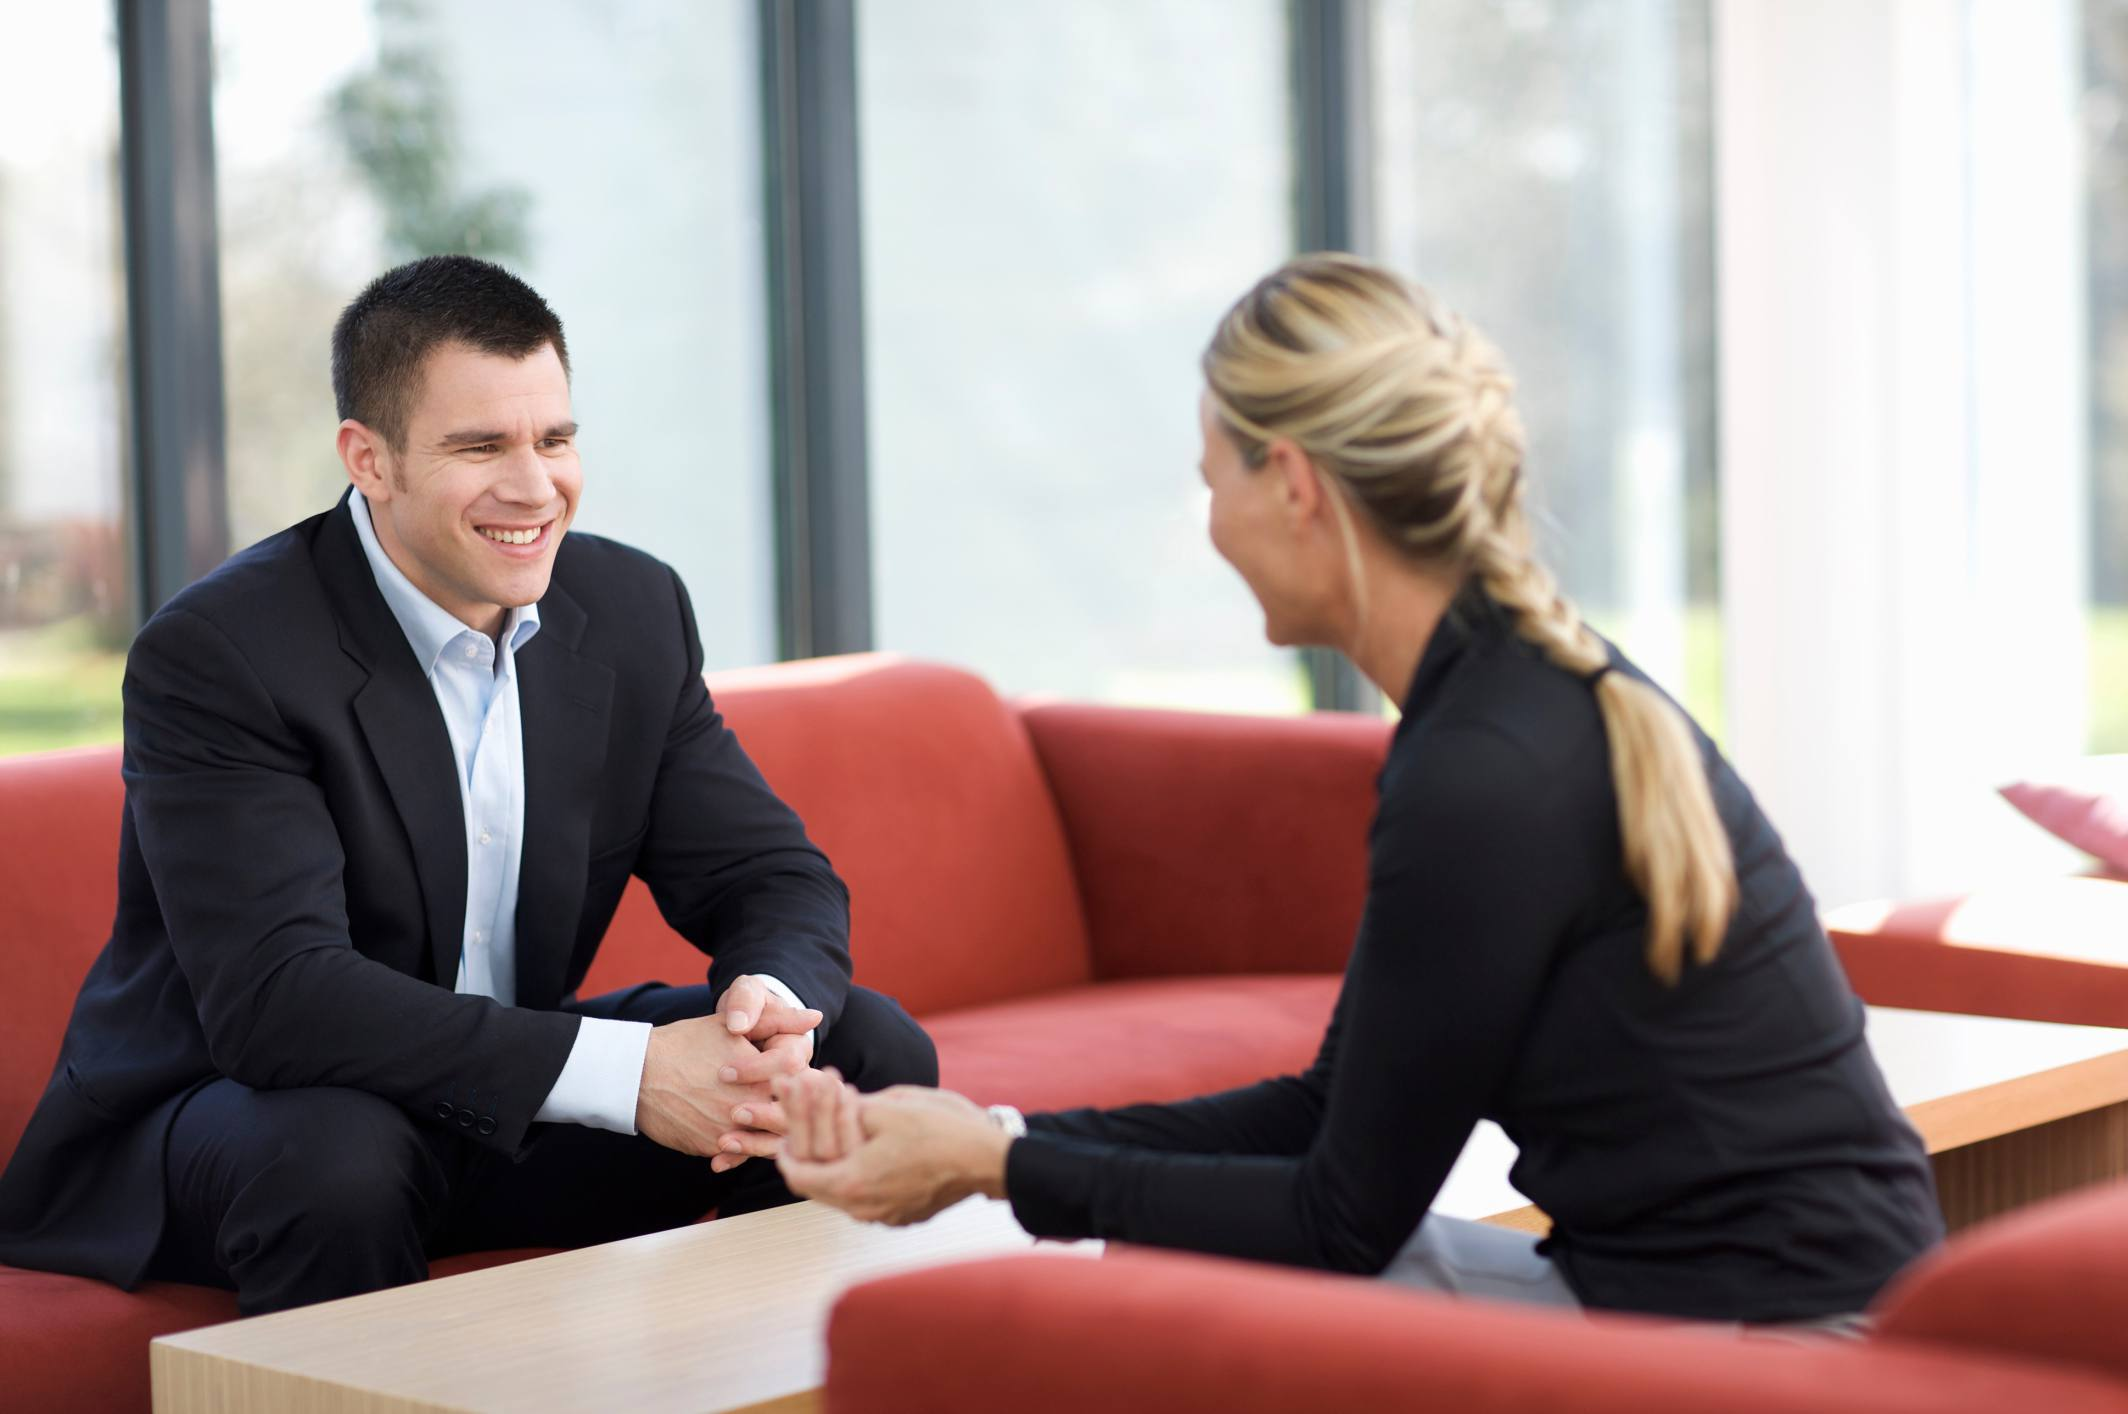 job interview man and woman